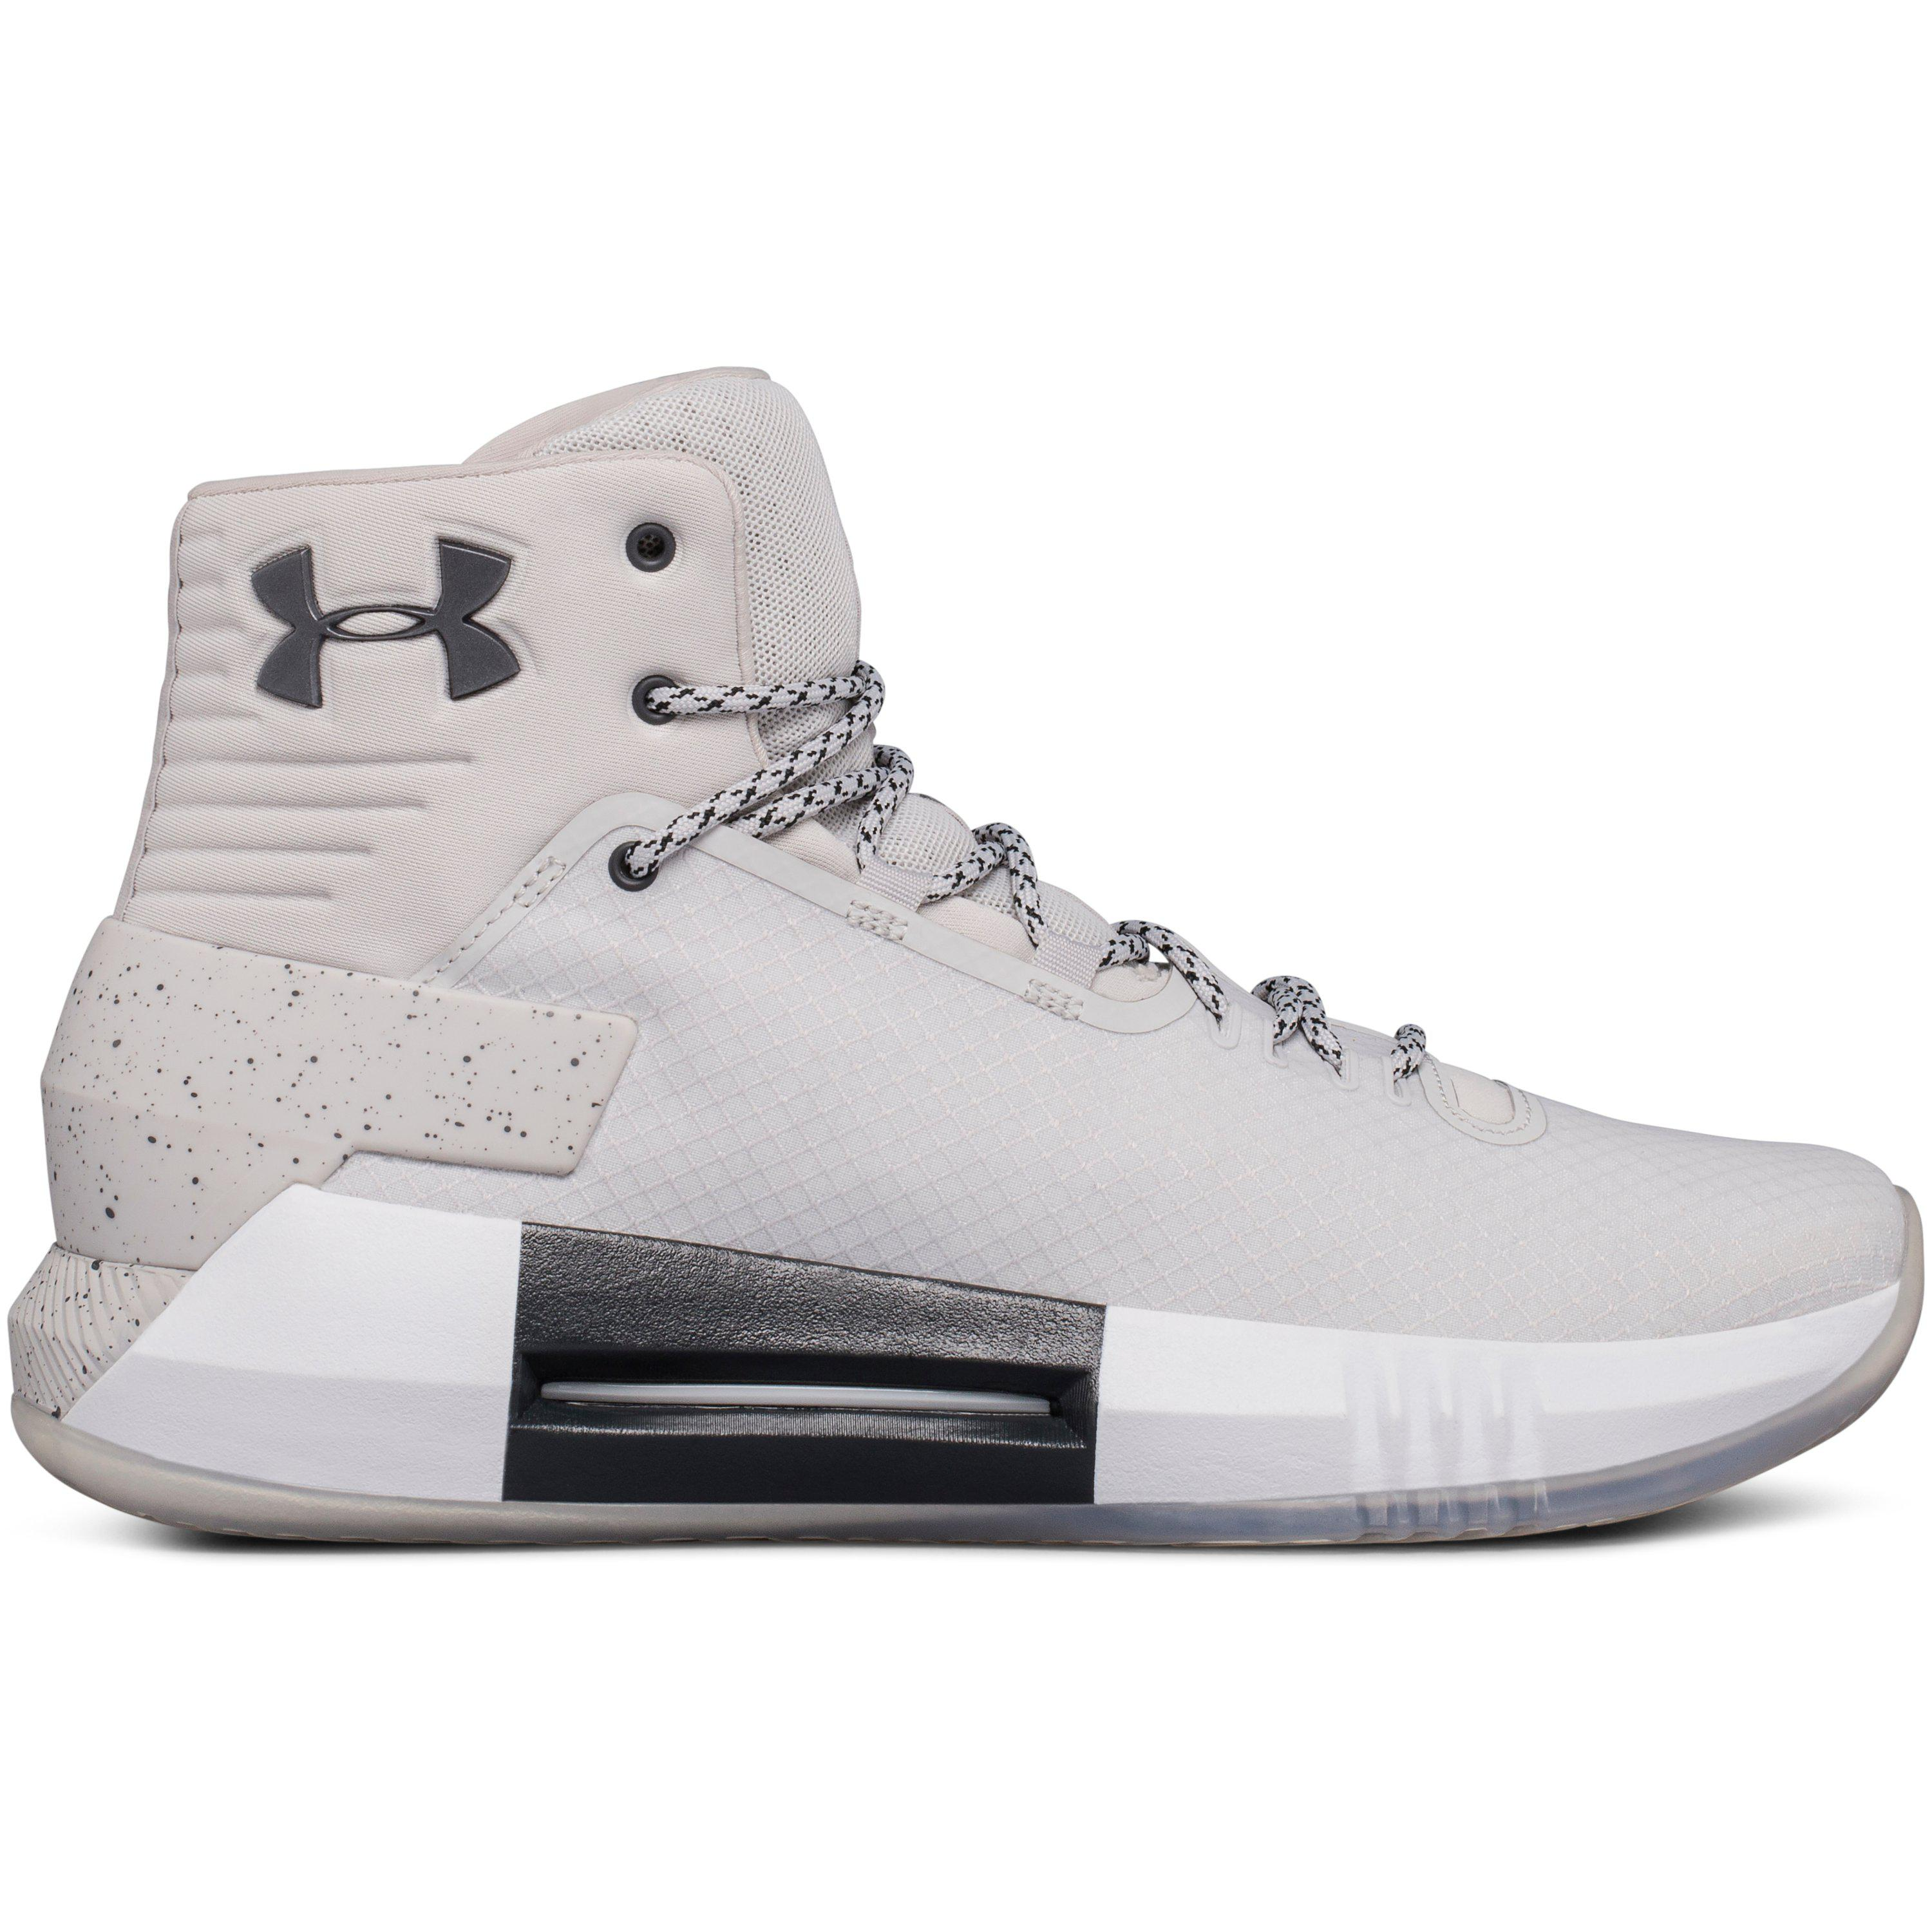 best sneakers 1a9d8 57379 Under Armour Men s Ua Drive 4 X Basketball Shoes in Gray for Men - Lyst